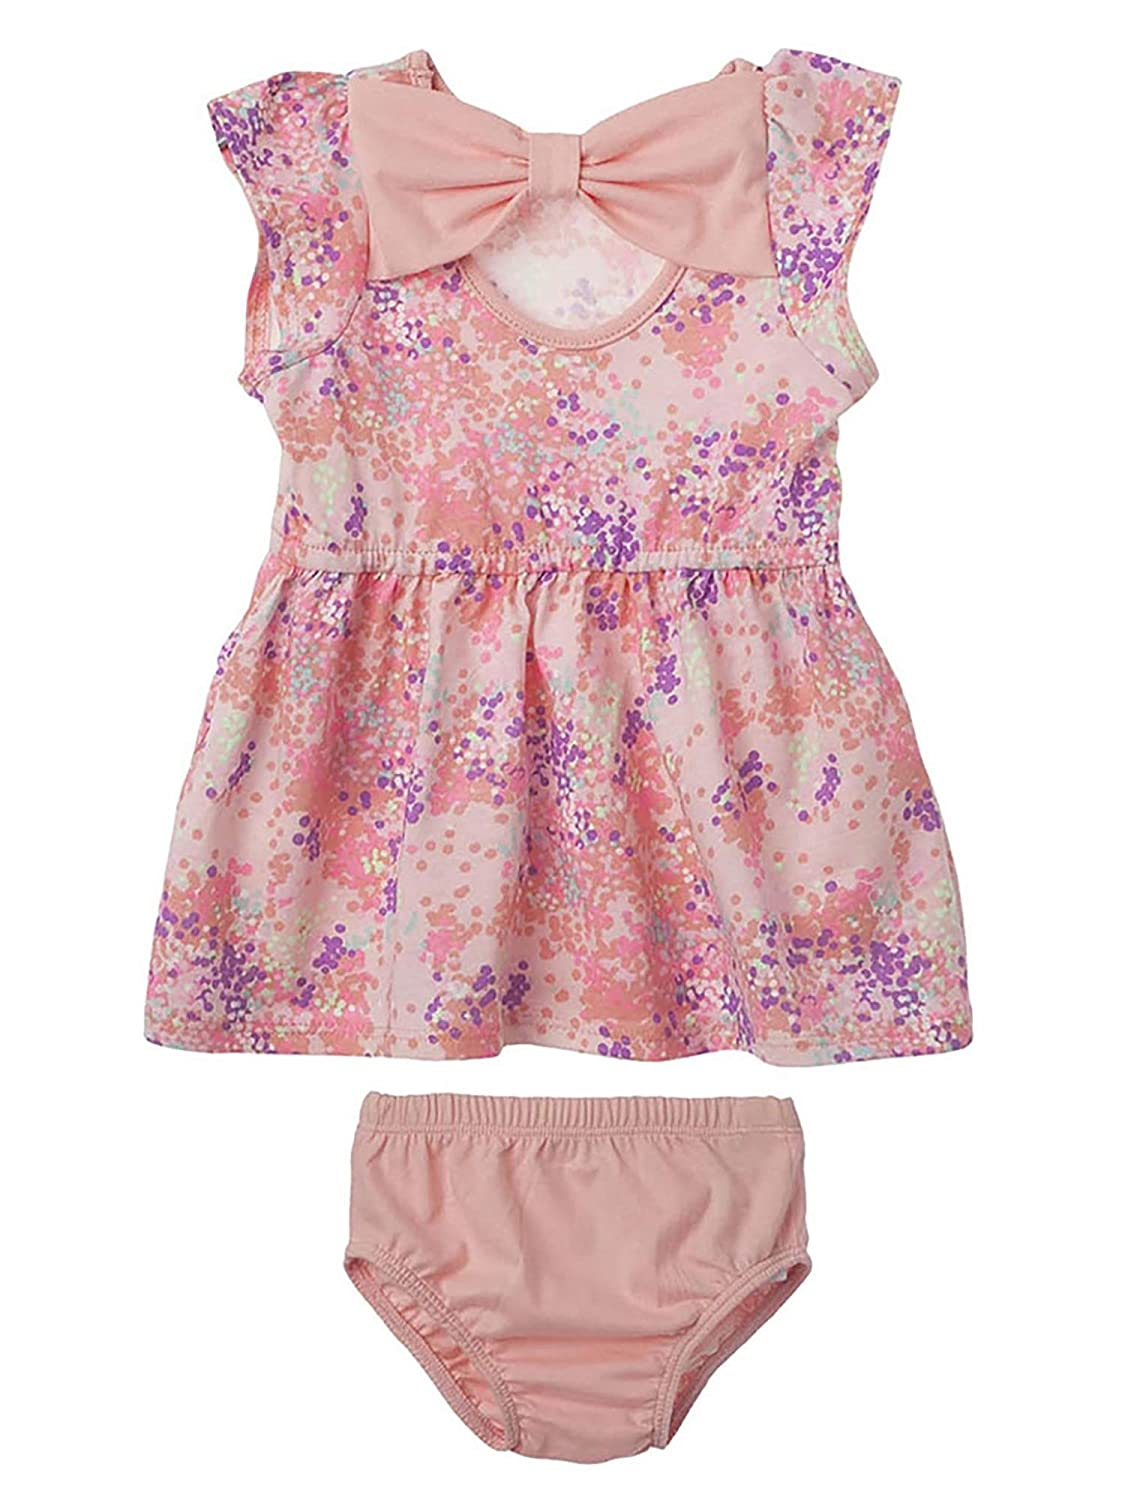 Amazon.com: OFFCORSS Baby Girl Newborn Cute Dress with Panty Set | Vestidos de Bebe Niña: Clothing